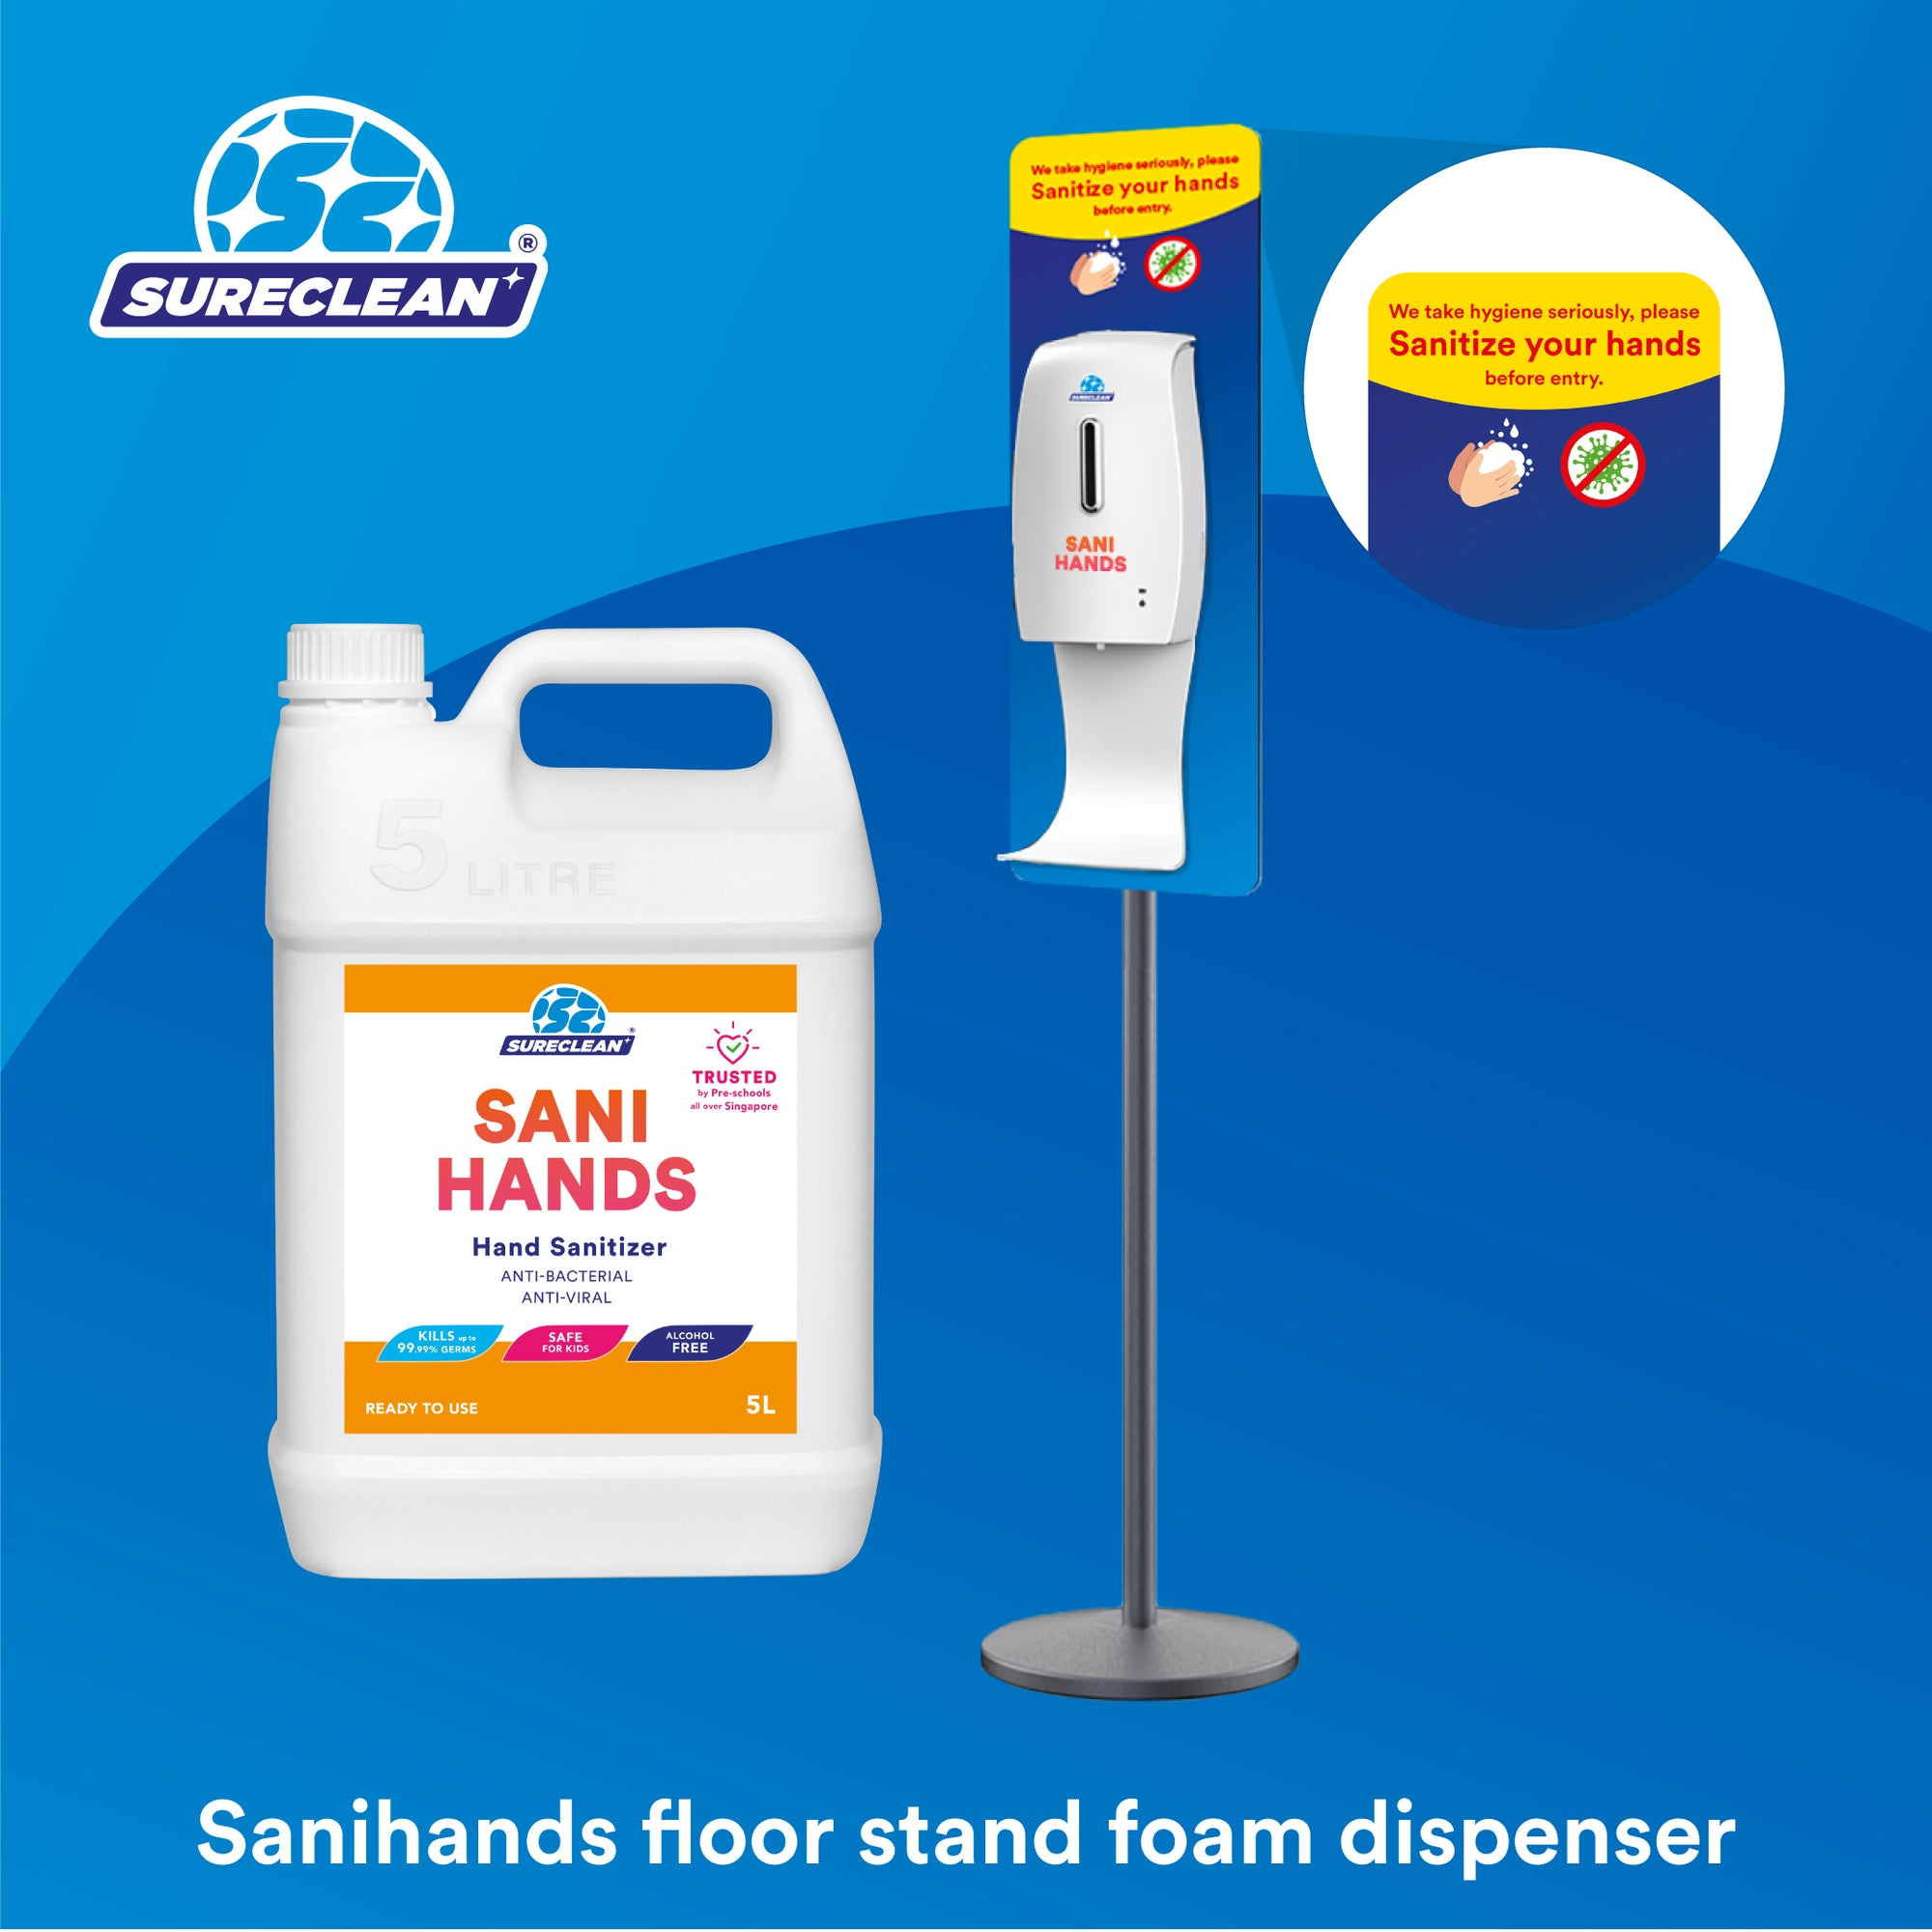 Sanihands Automatic Hand Sanitizer Dispenser (Floor Stand) + Refill Bundle